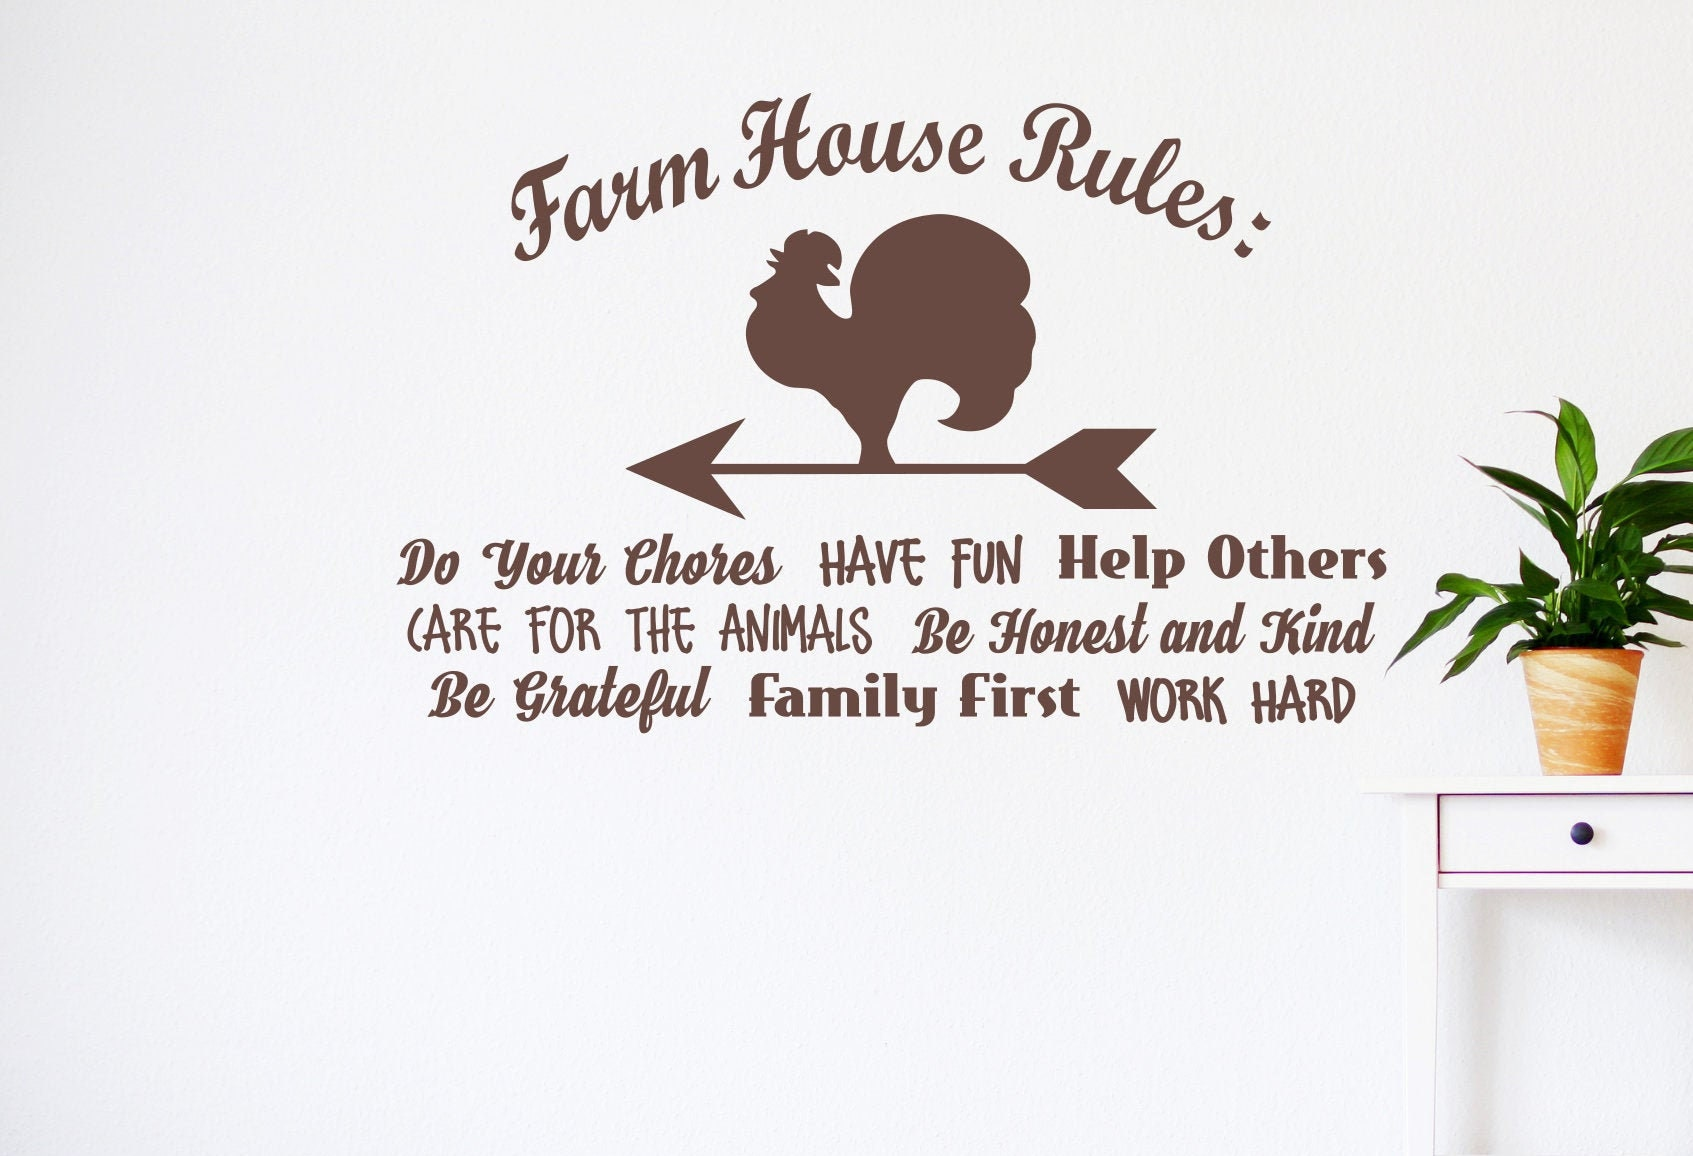 Farmhouse rules wall decal for kitchen, Farmhouse sign ...